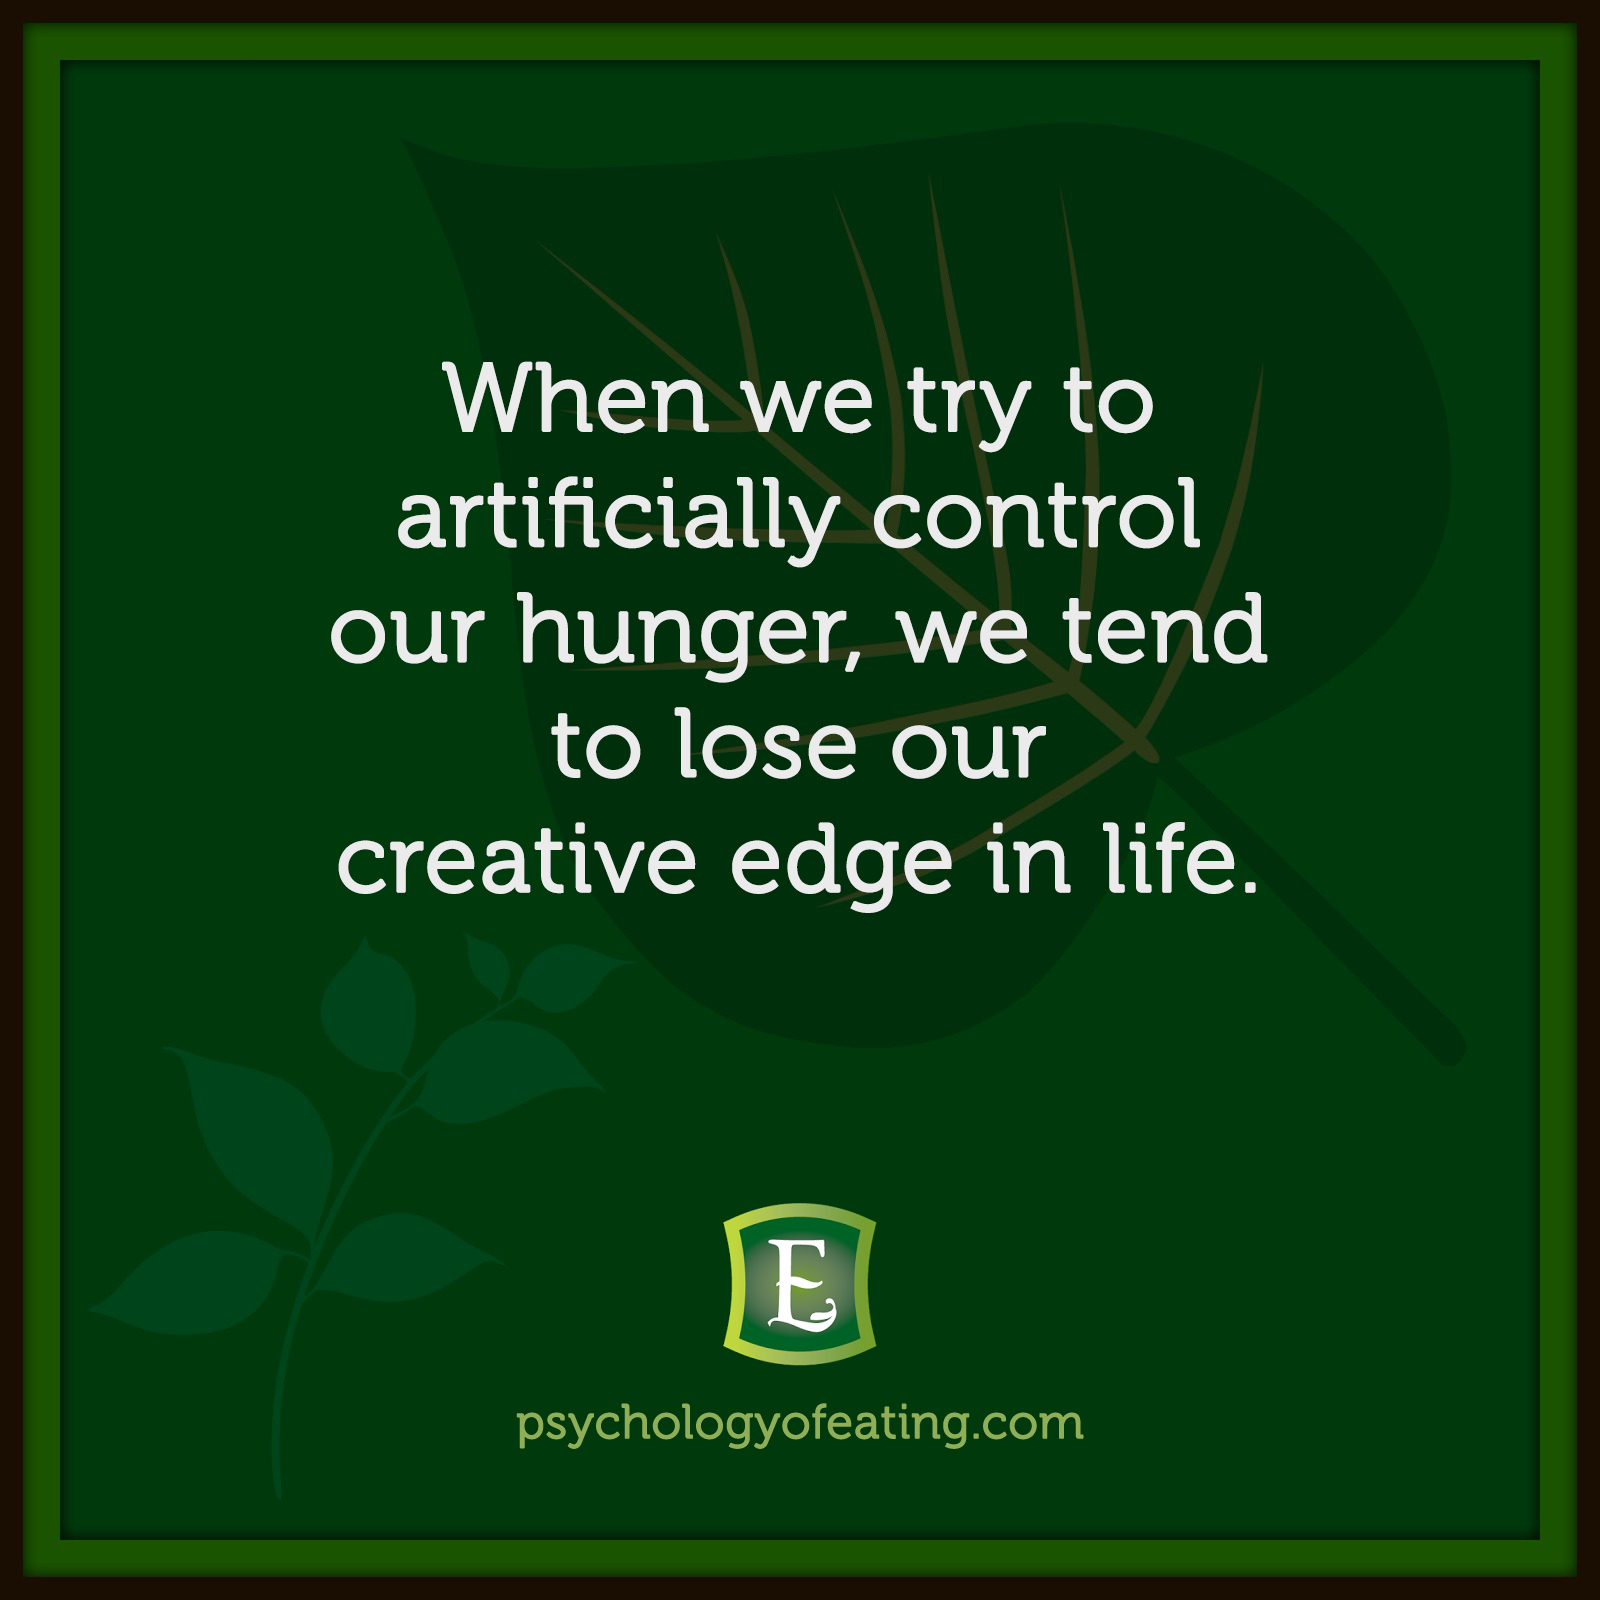 When we try to artificially control our hunger, we tend to lose our creative edge in life. #health #nutrition #eatingpsychology #IPE